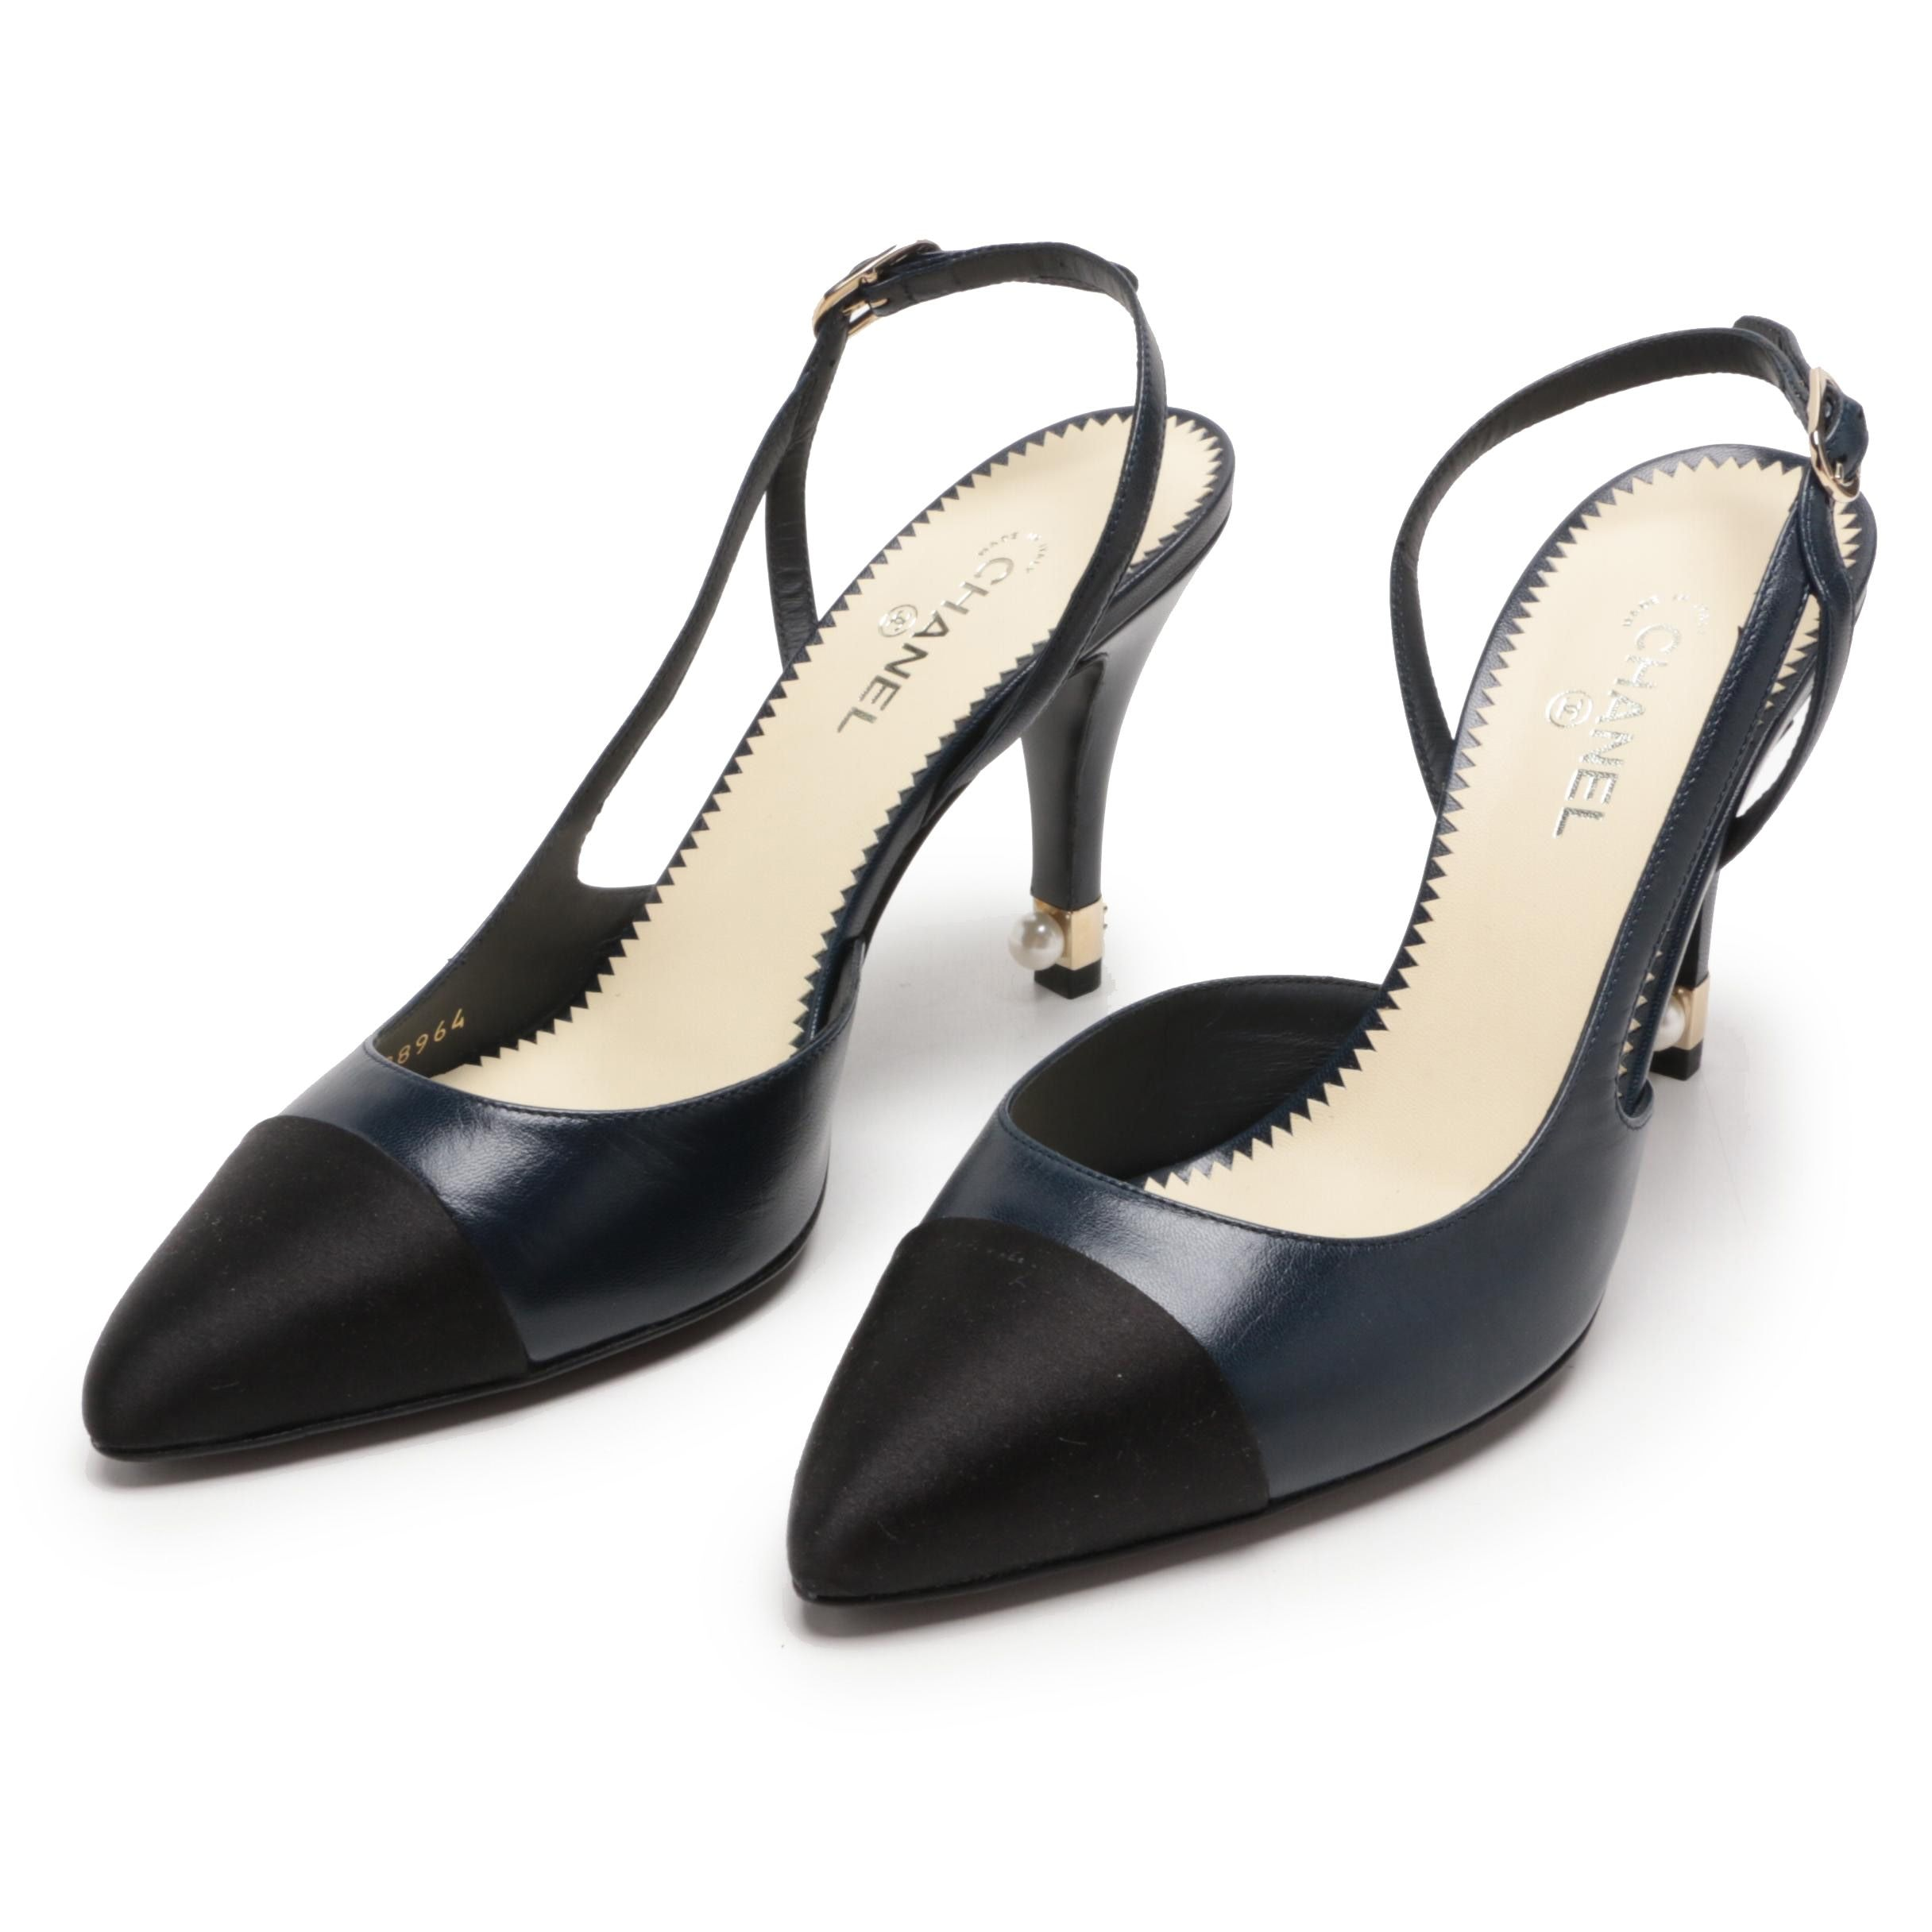 Chanel Navy Blue Leather and Black Satin Slingback Heels